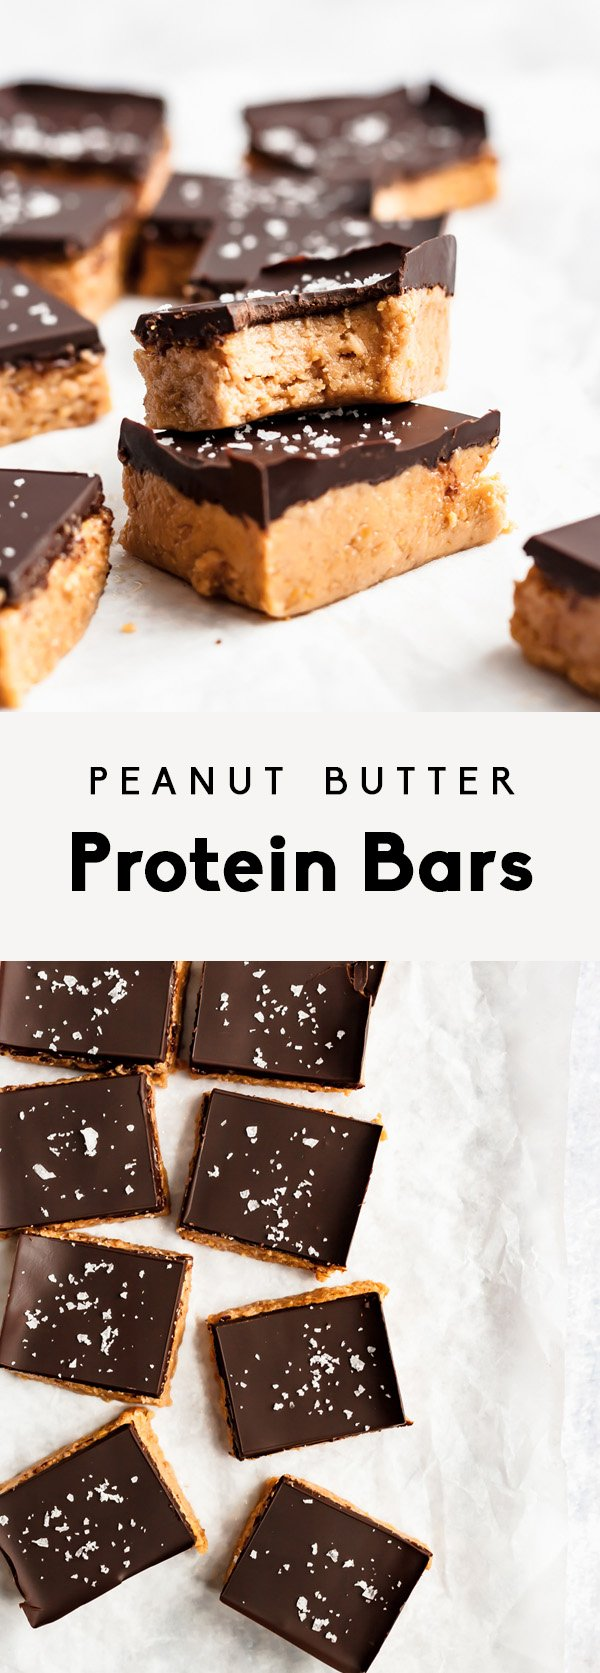 collage of peanut butter protein bars topped with chocolate